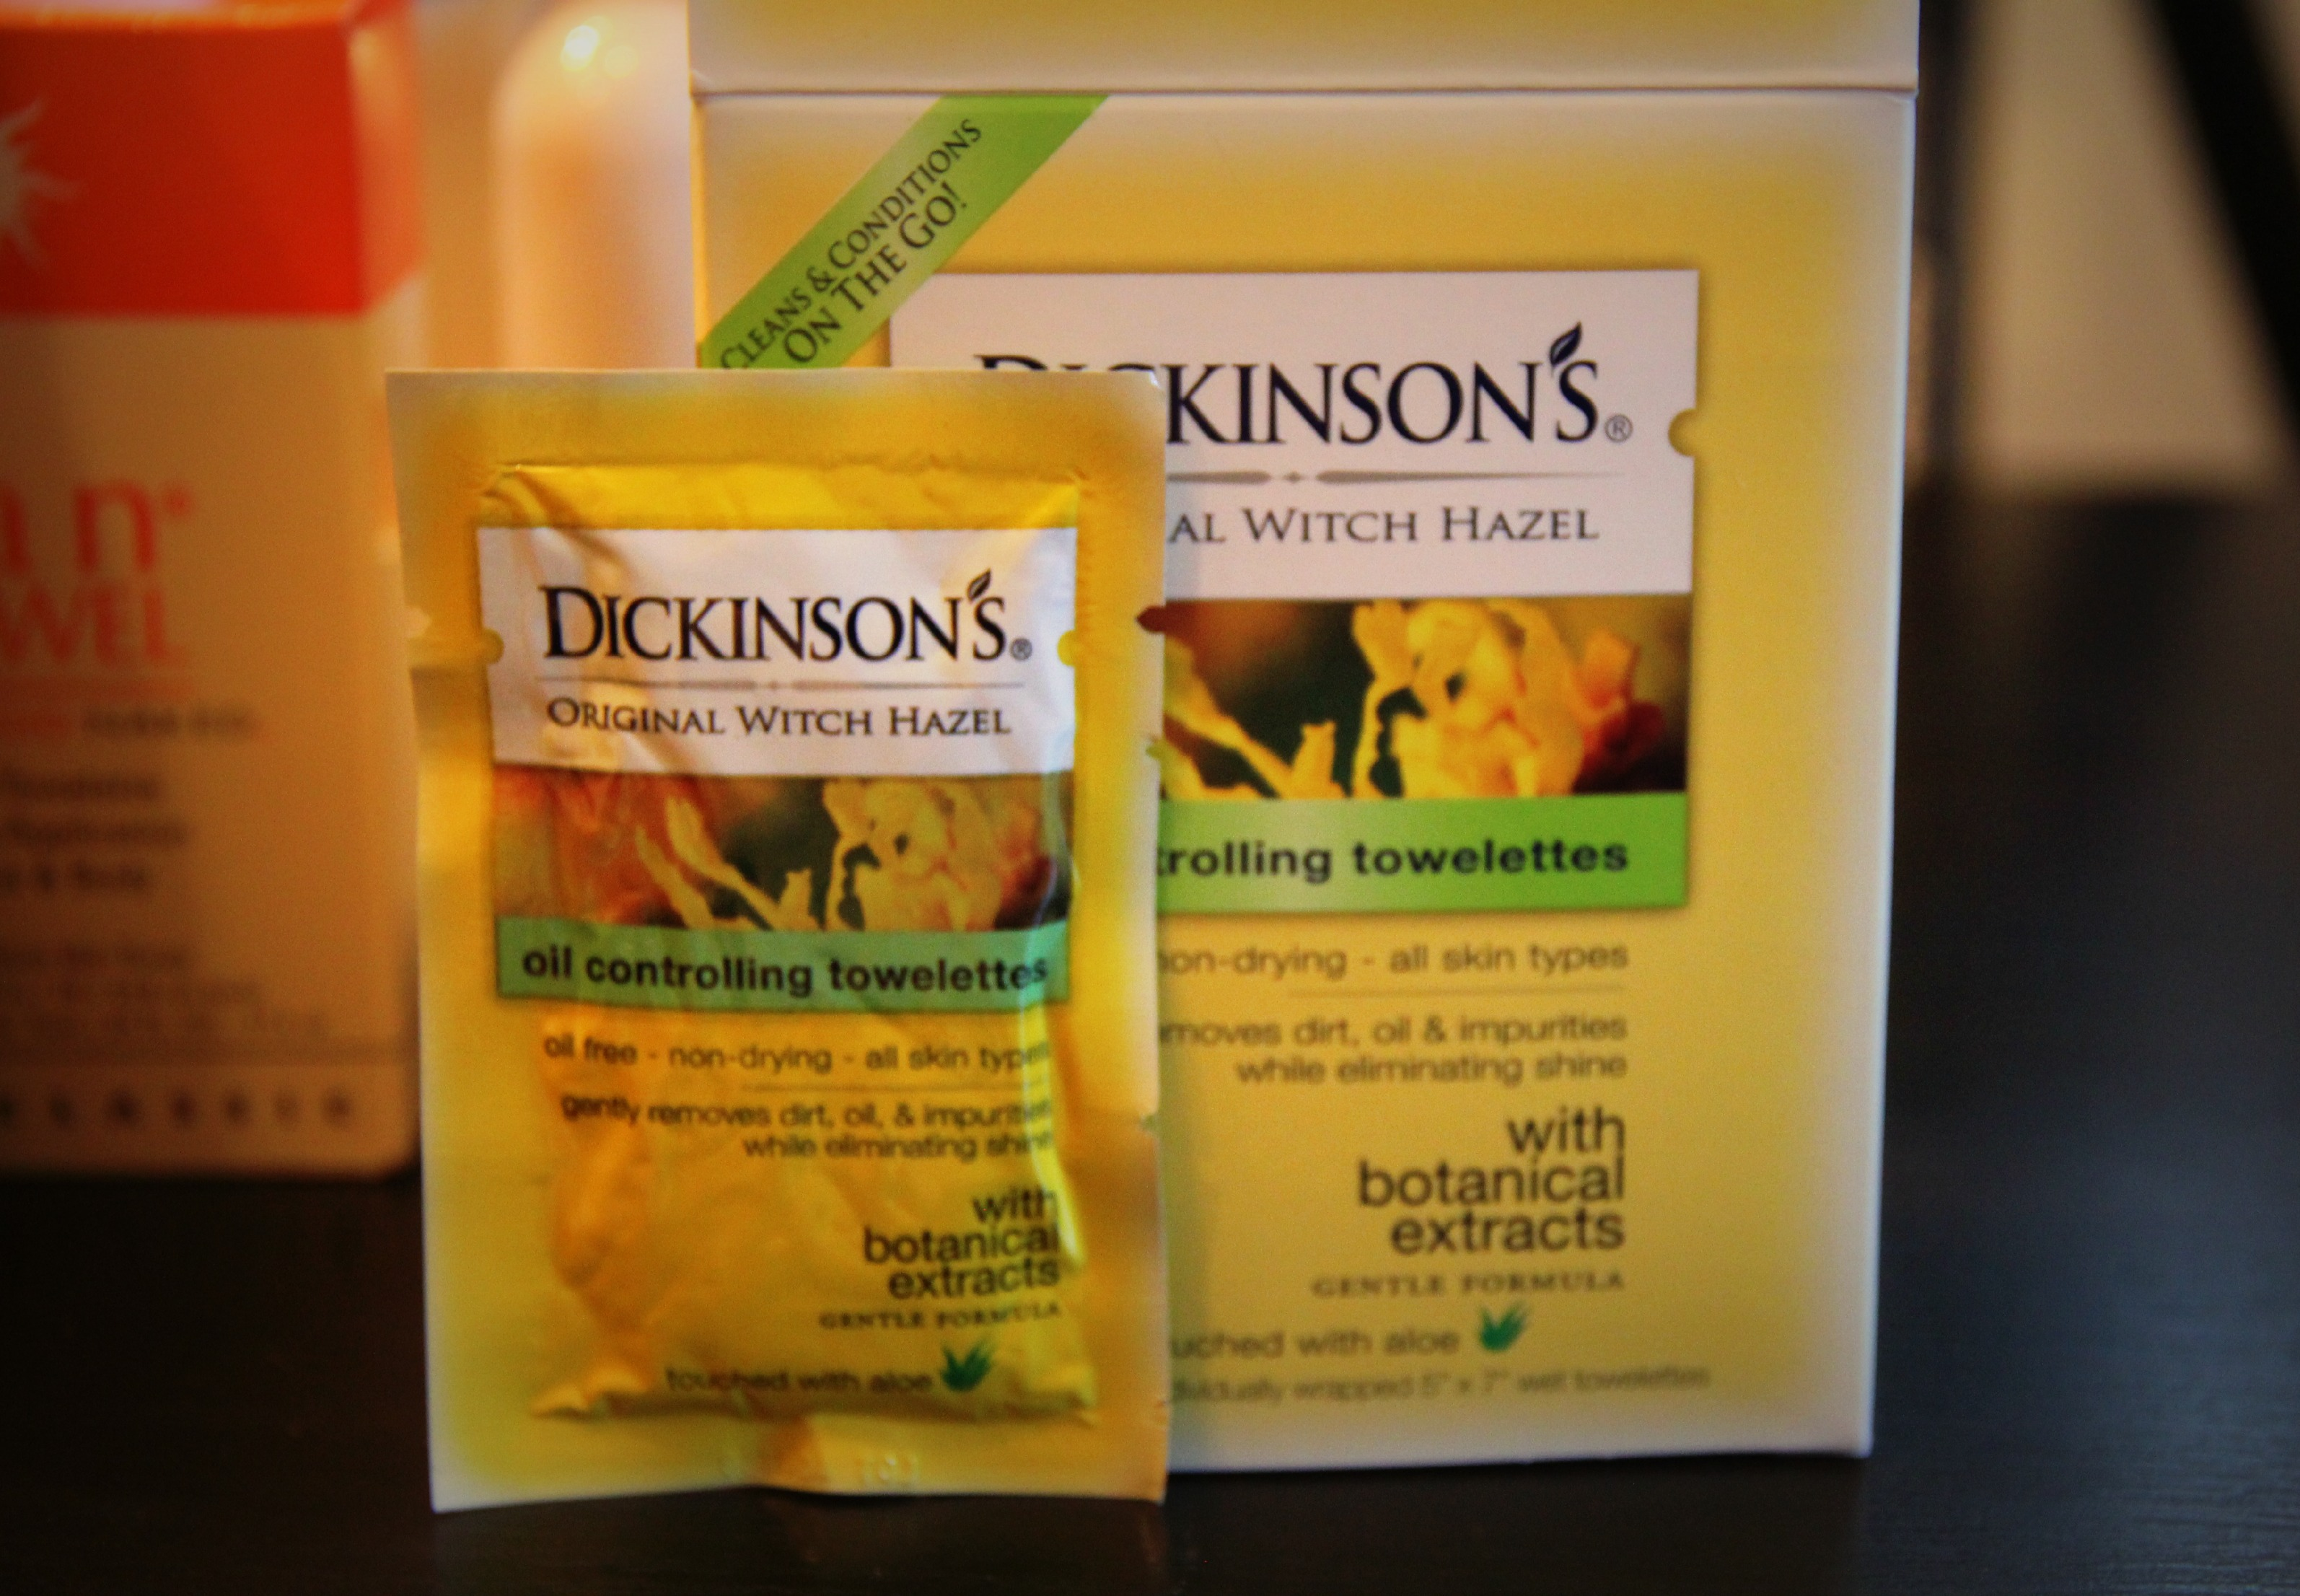 dickinsons oil controlling towelettes